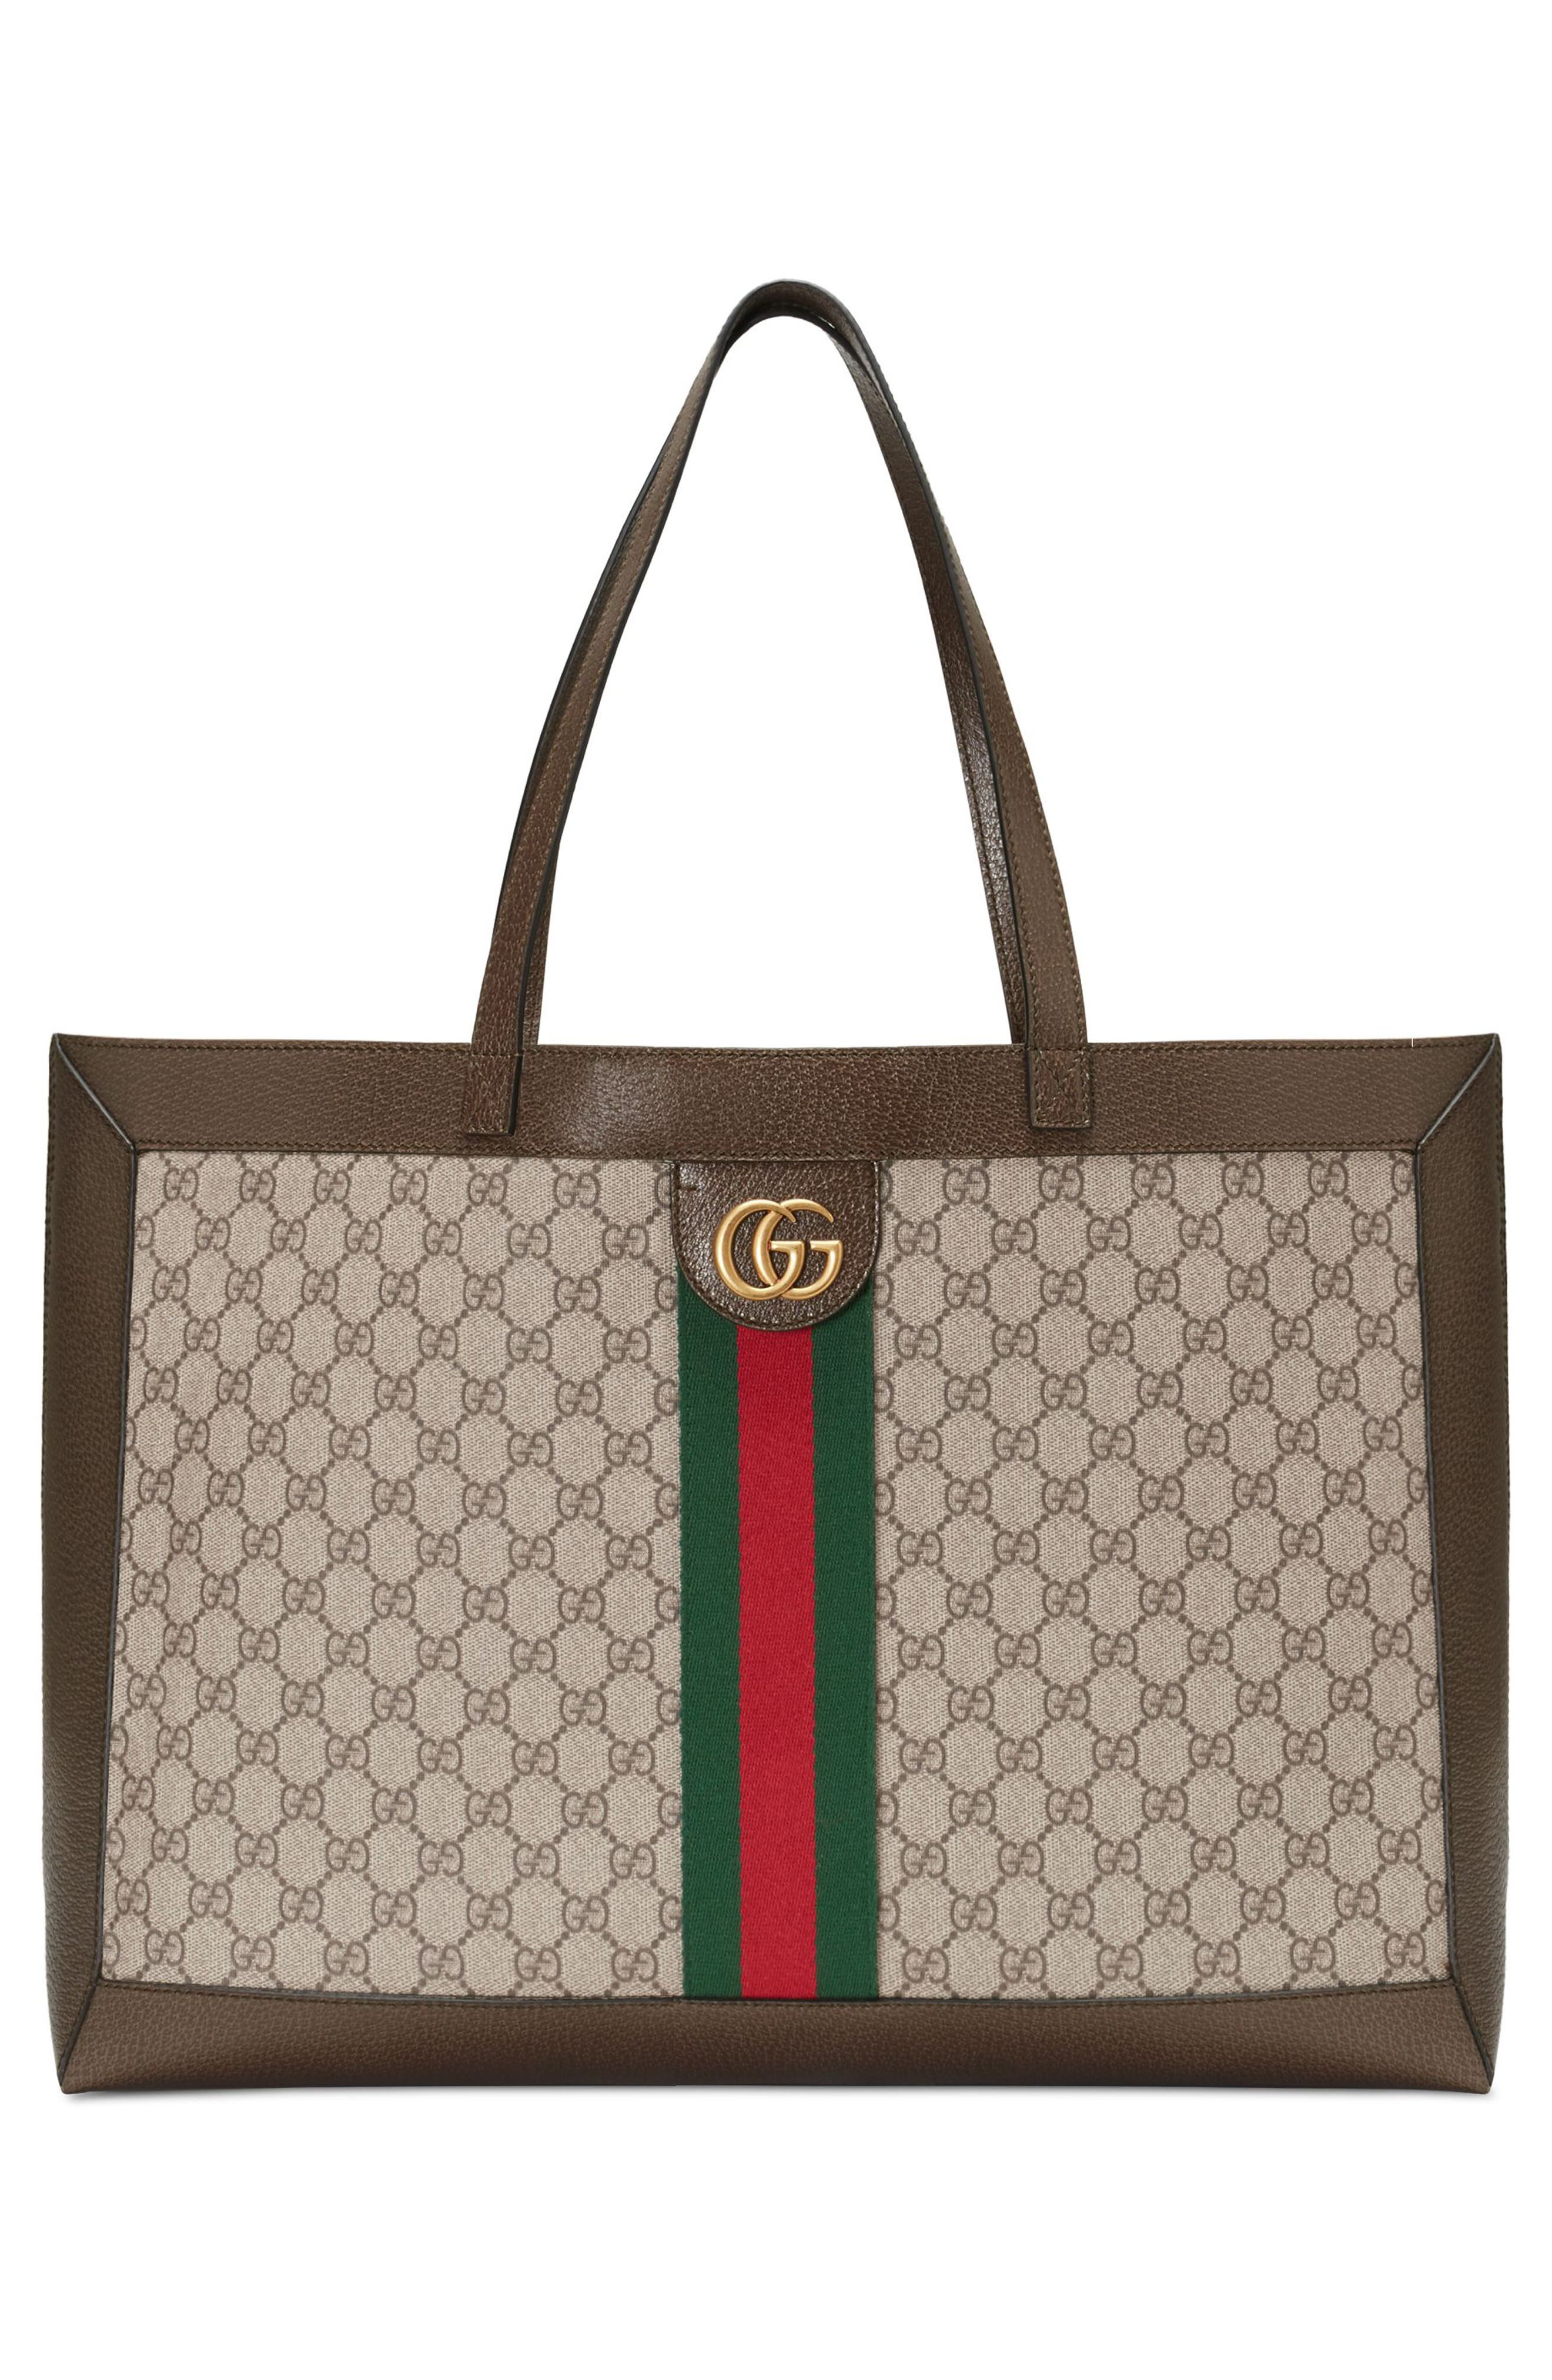 Ophidia GG Supreme Canvas Tote,                             Alternate thumbnail 5, color,                             284